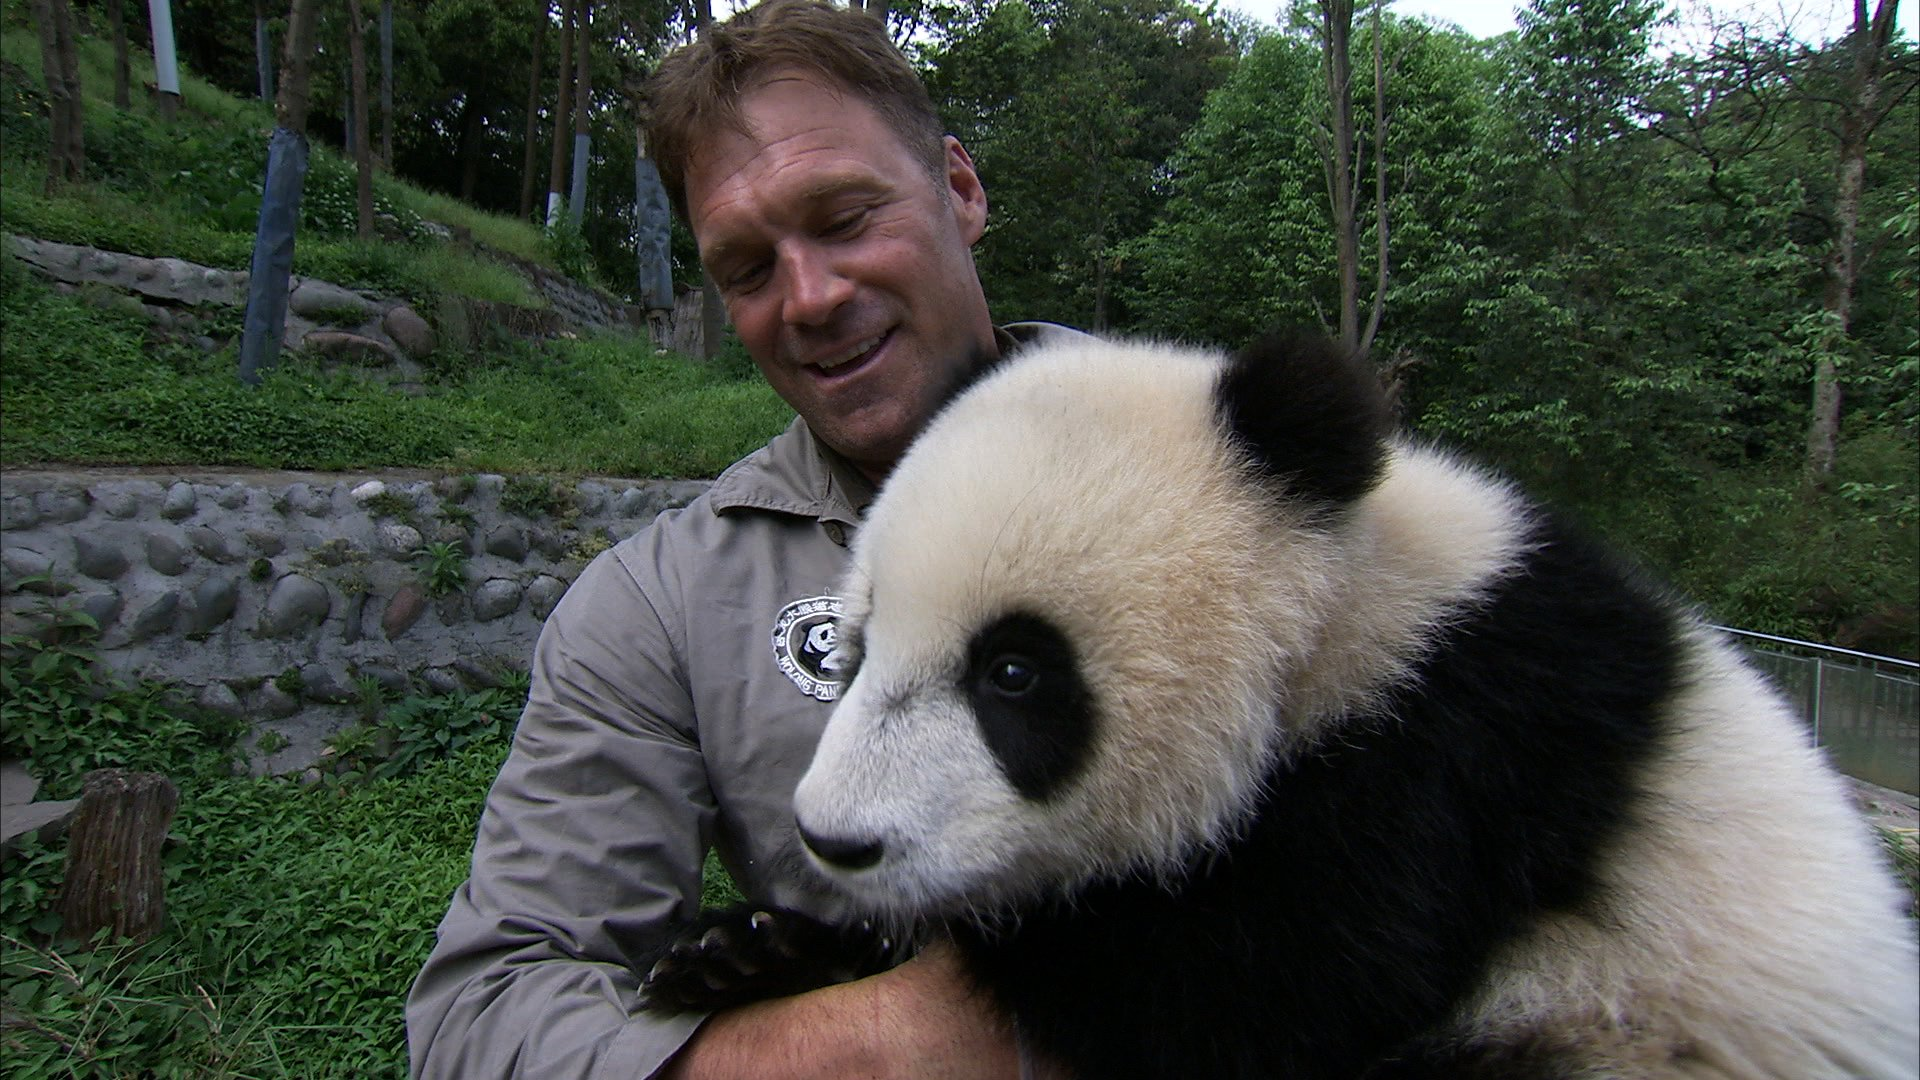 The Giant Panda : Expedition China – Episode 7